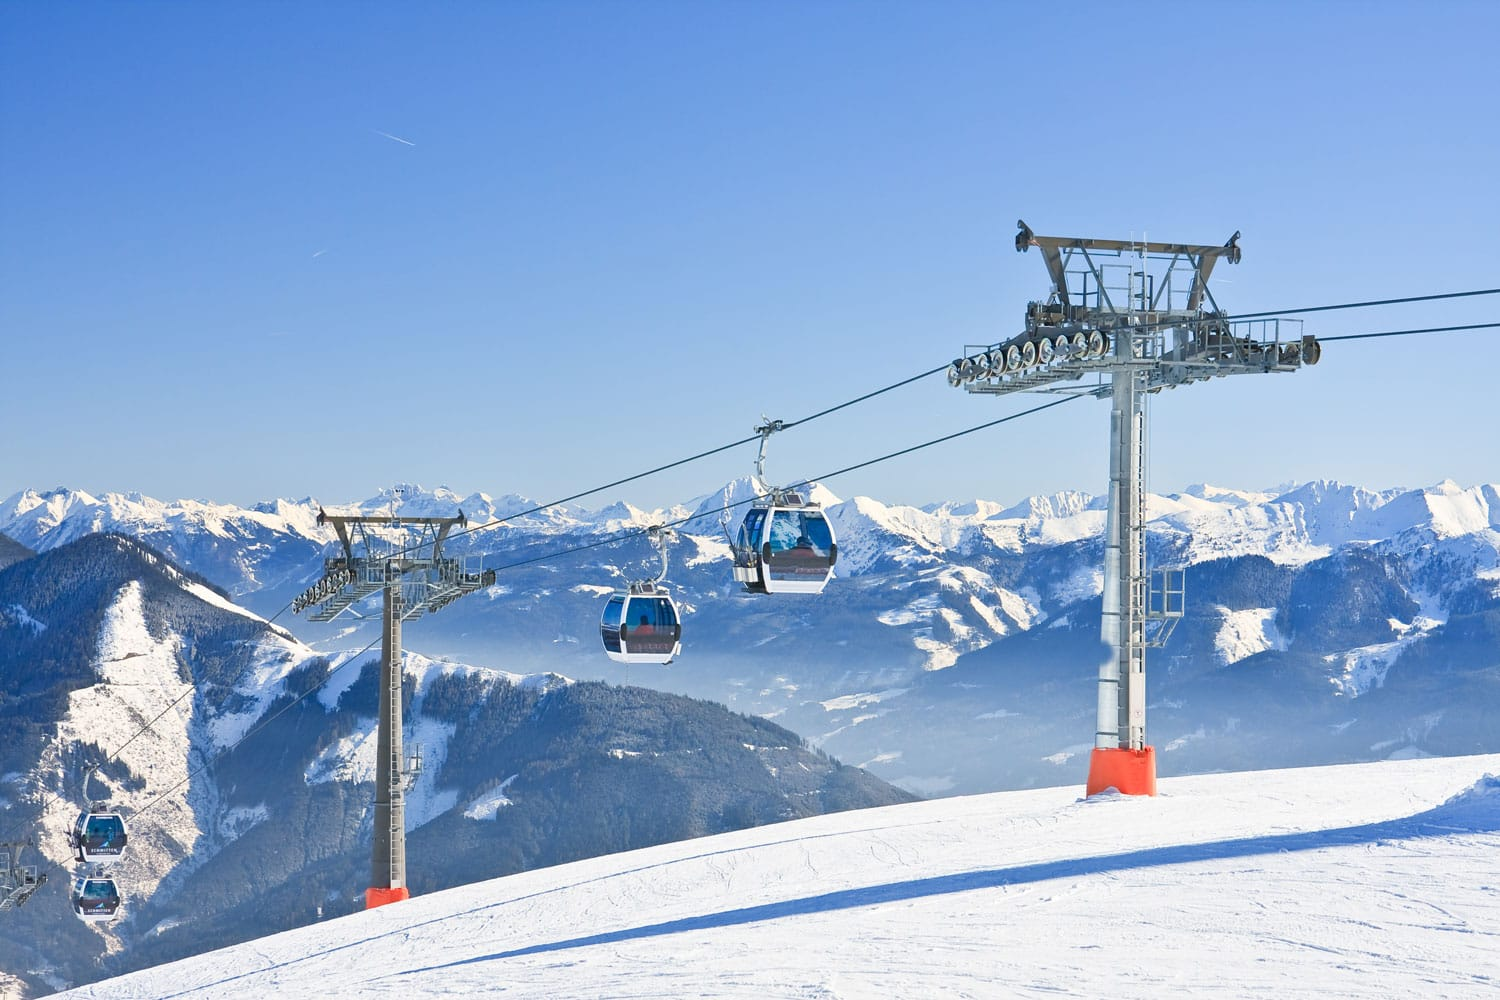 Chairlift cable car and ski slopes in the mountains of Zell am See winter resort, Austrian Alps